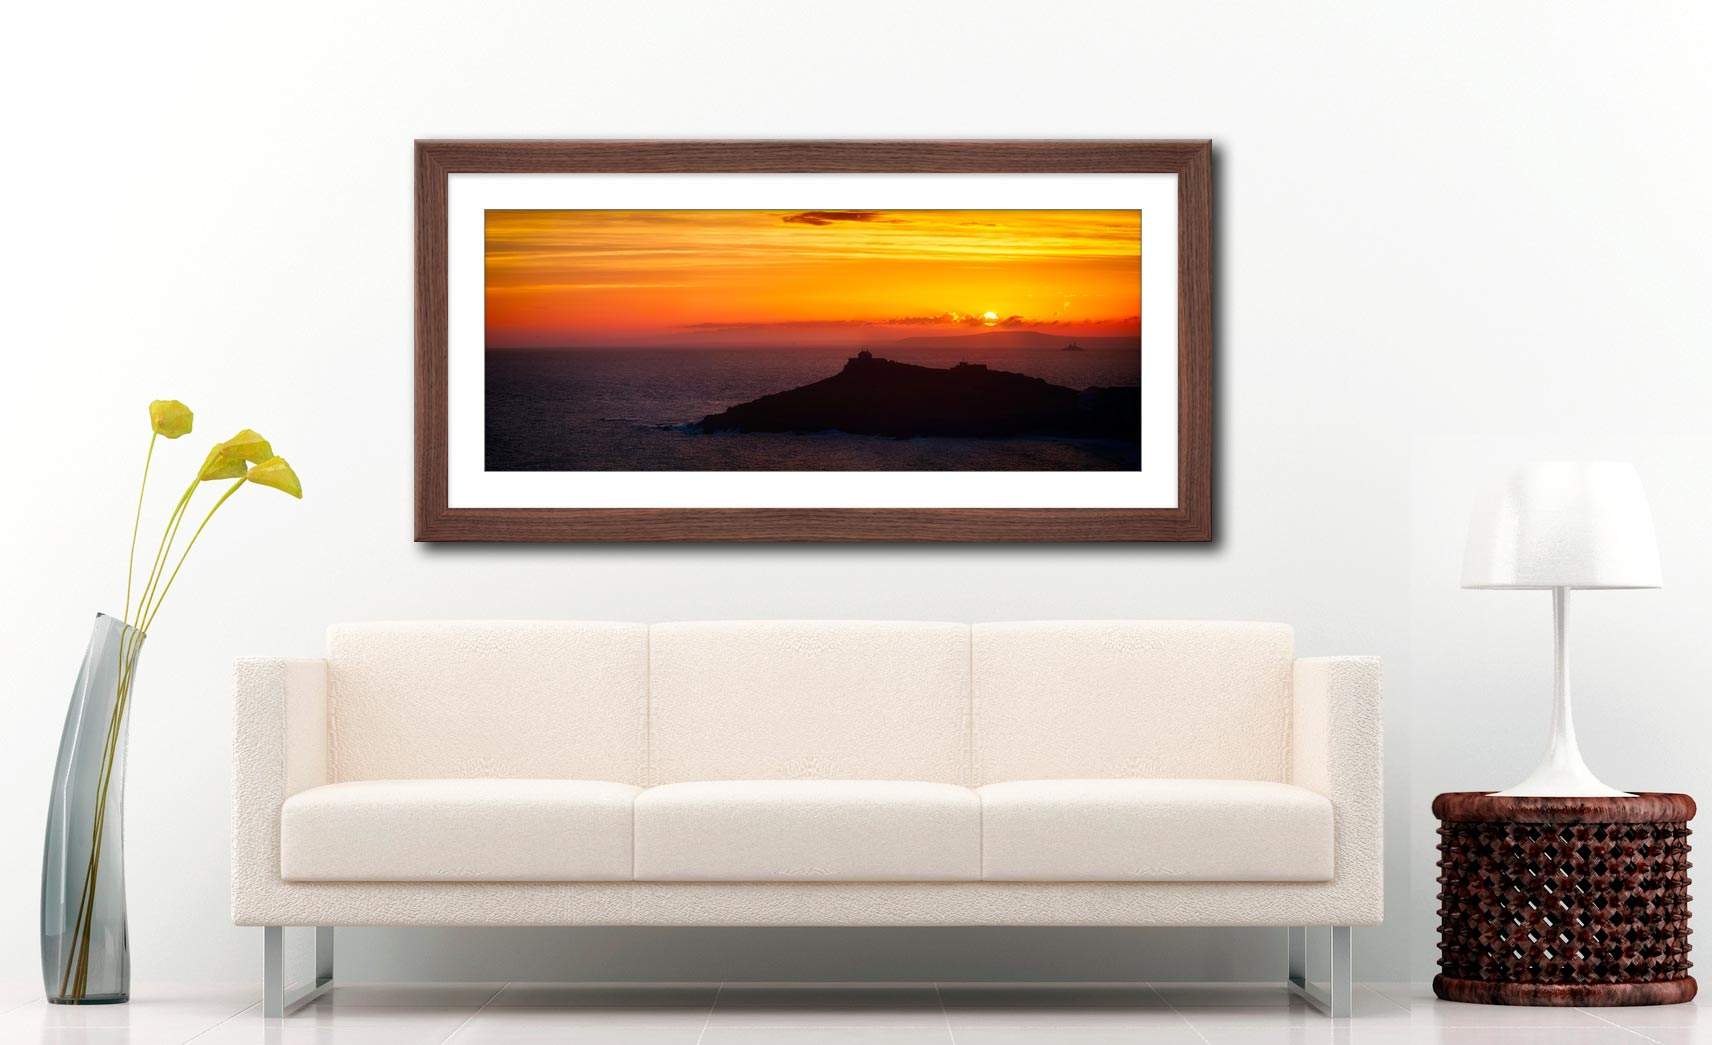 Sunrise Over St Ives Island - Framed Print with Mount on Wall